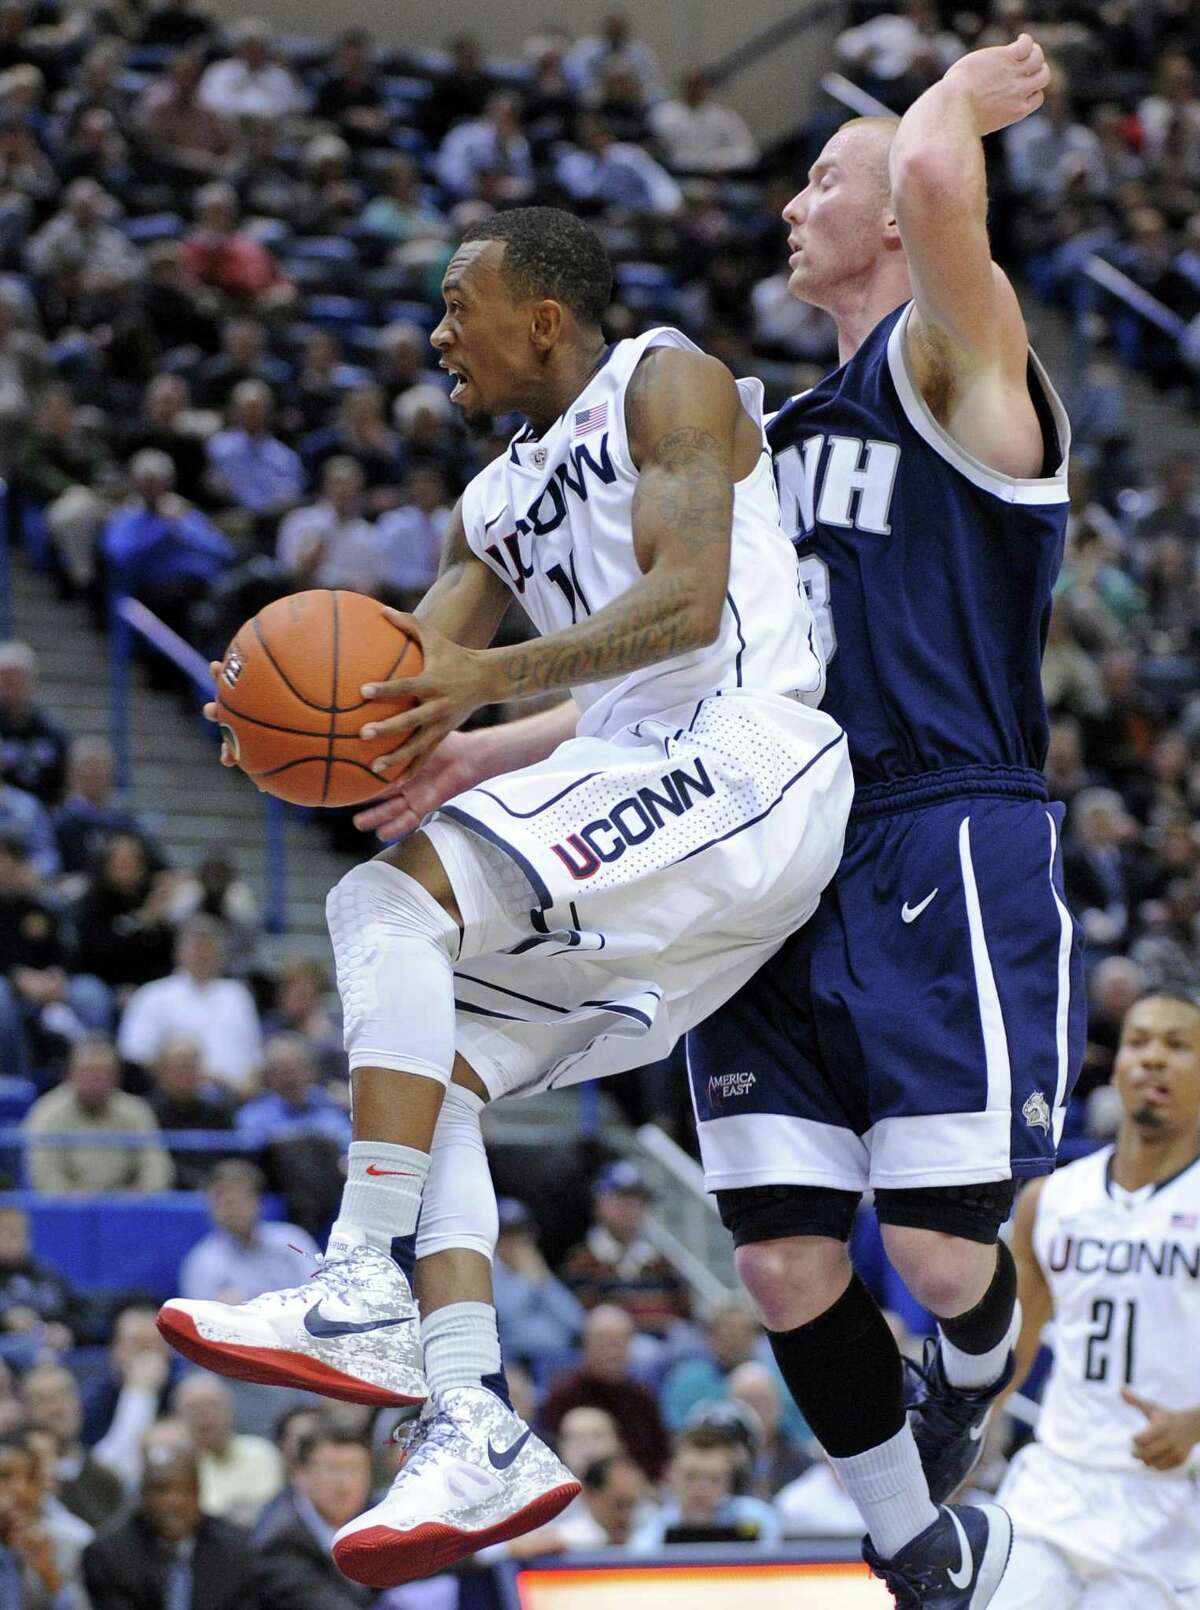 Connecticut's Ryan Boatright, left, drives past New Hampshire's Chandler Rhoads during the second half of an NCAA college basketball game in Hartford, Conn., Thursday, Nov. 29, 2012. Boatright scored a team-high 19 points in Connecticut's 61-53 victory. (AP Photo/Fred Beckham)